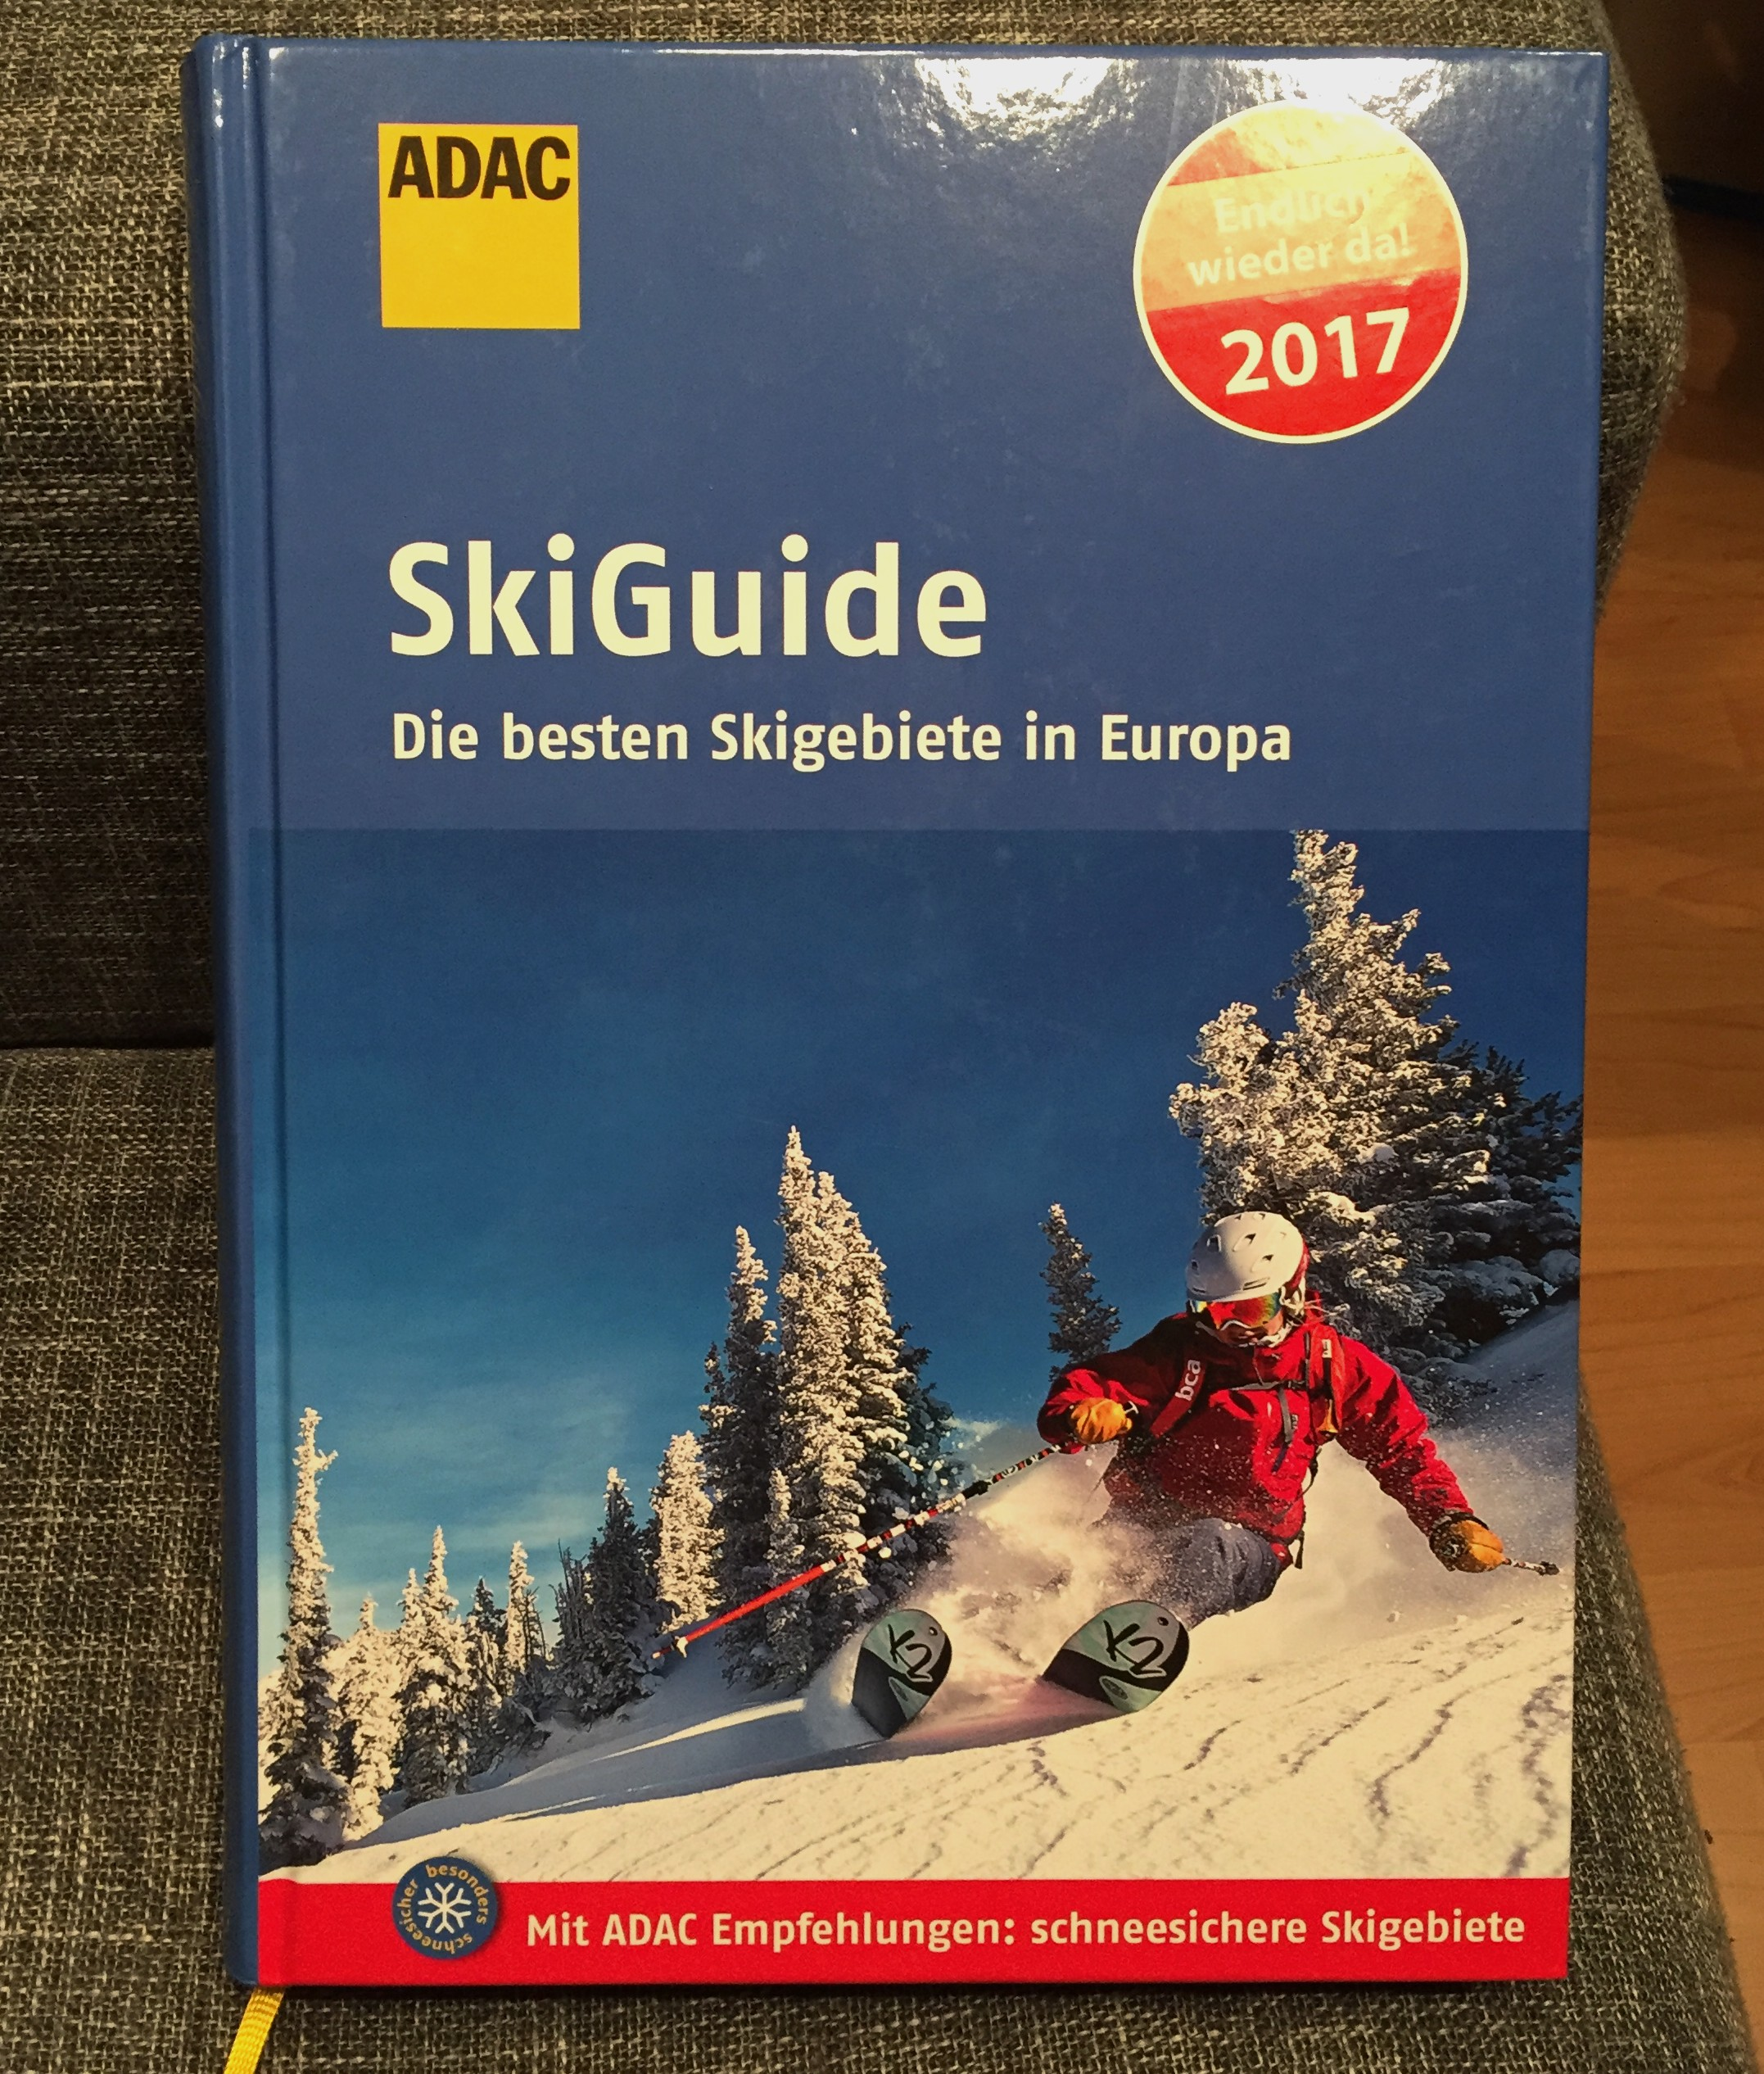 adac-skiguide-2017-review-1